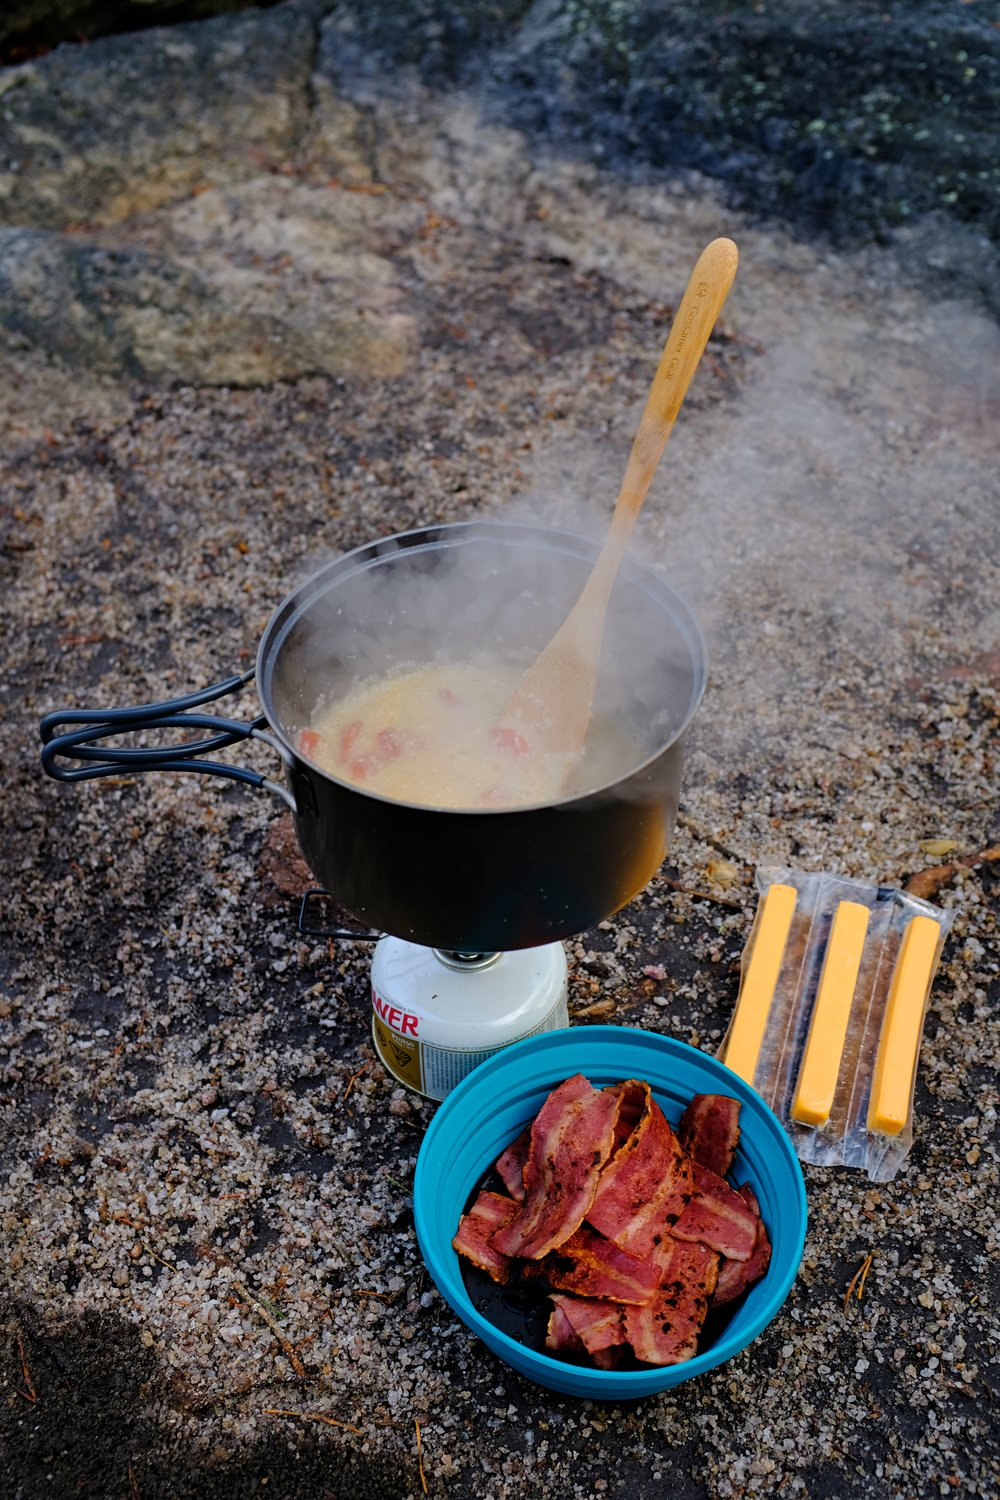 Boil and cook times will vary due to altitude. At altitudes above 5,000 feet, meals require a longer boil time due to atmospheric pressure.